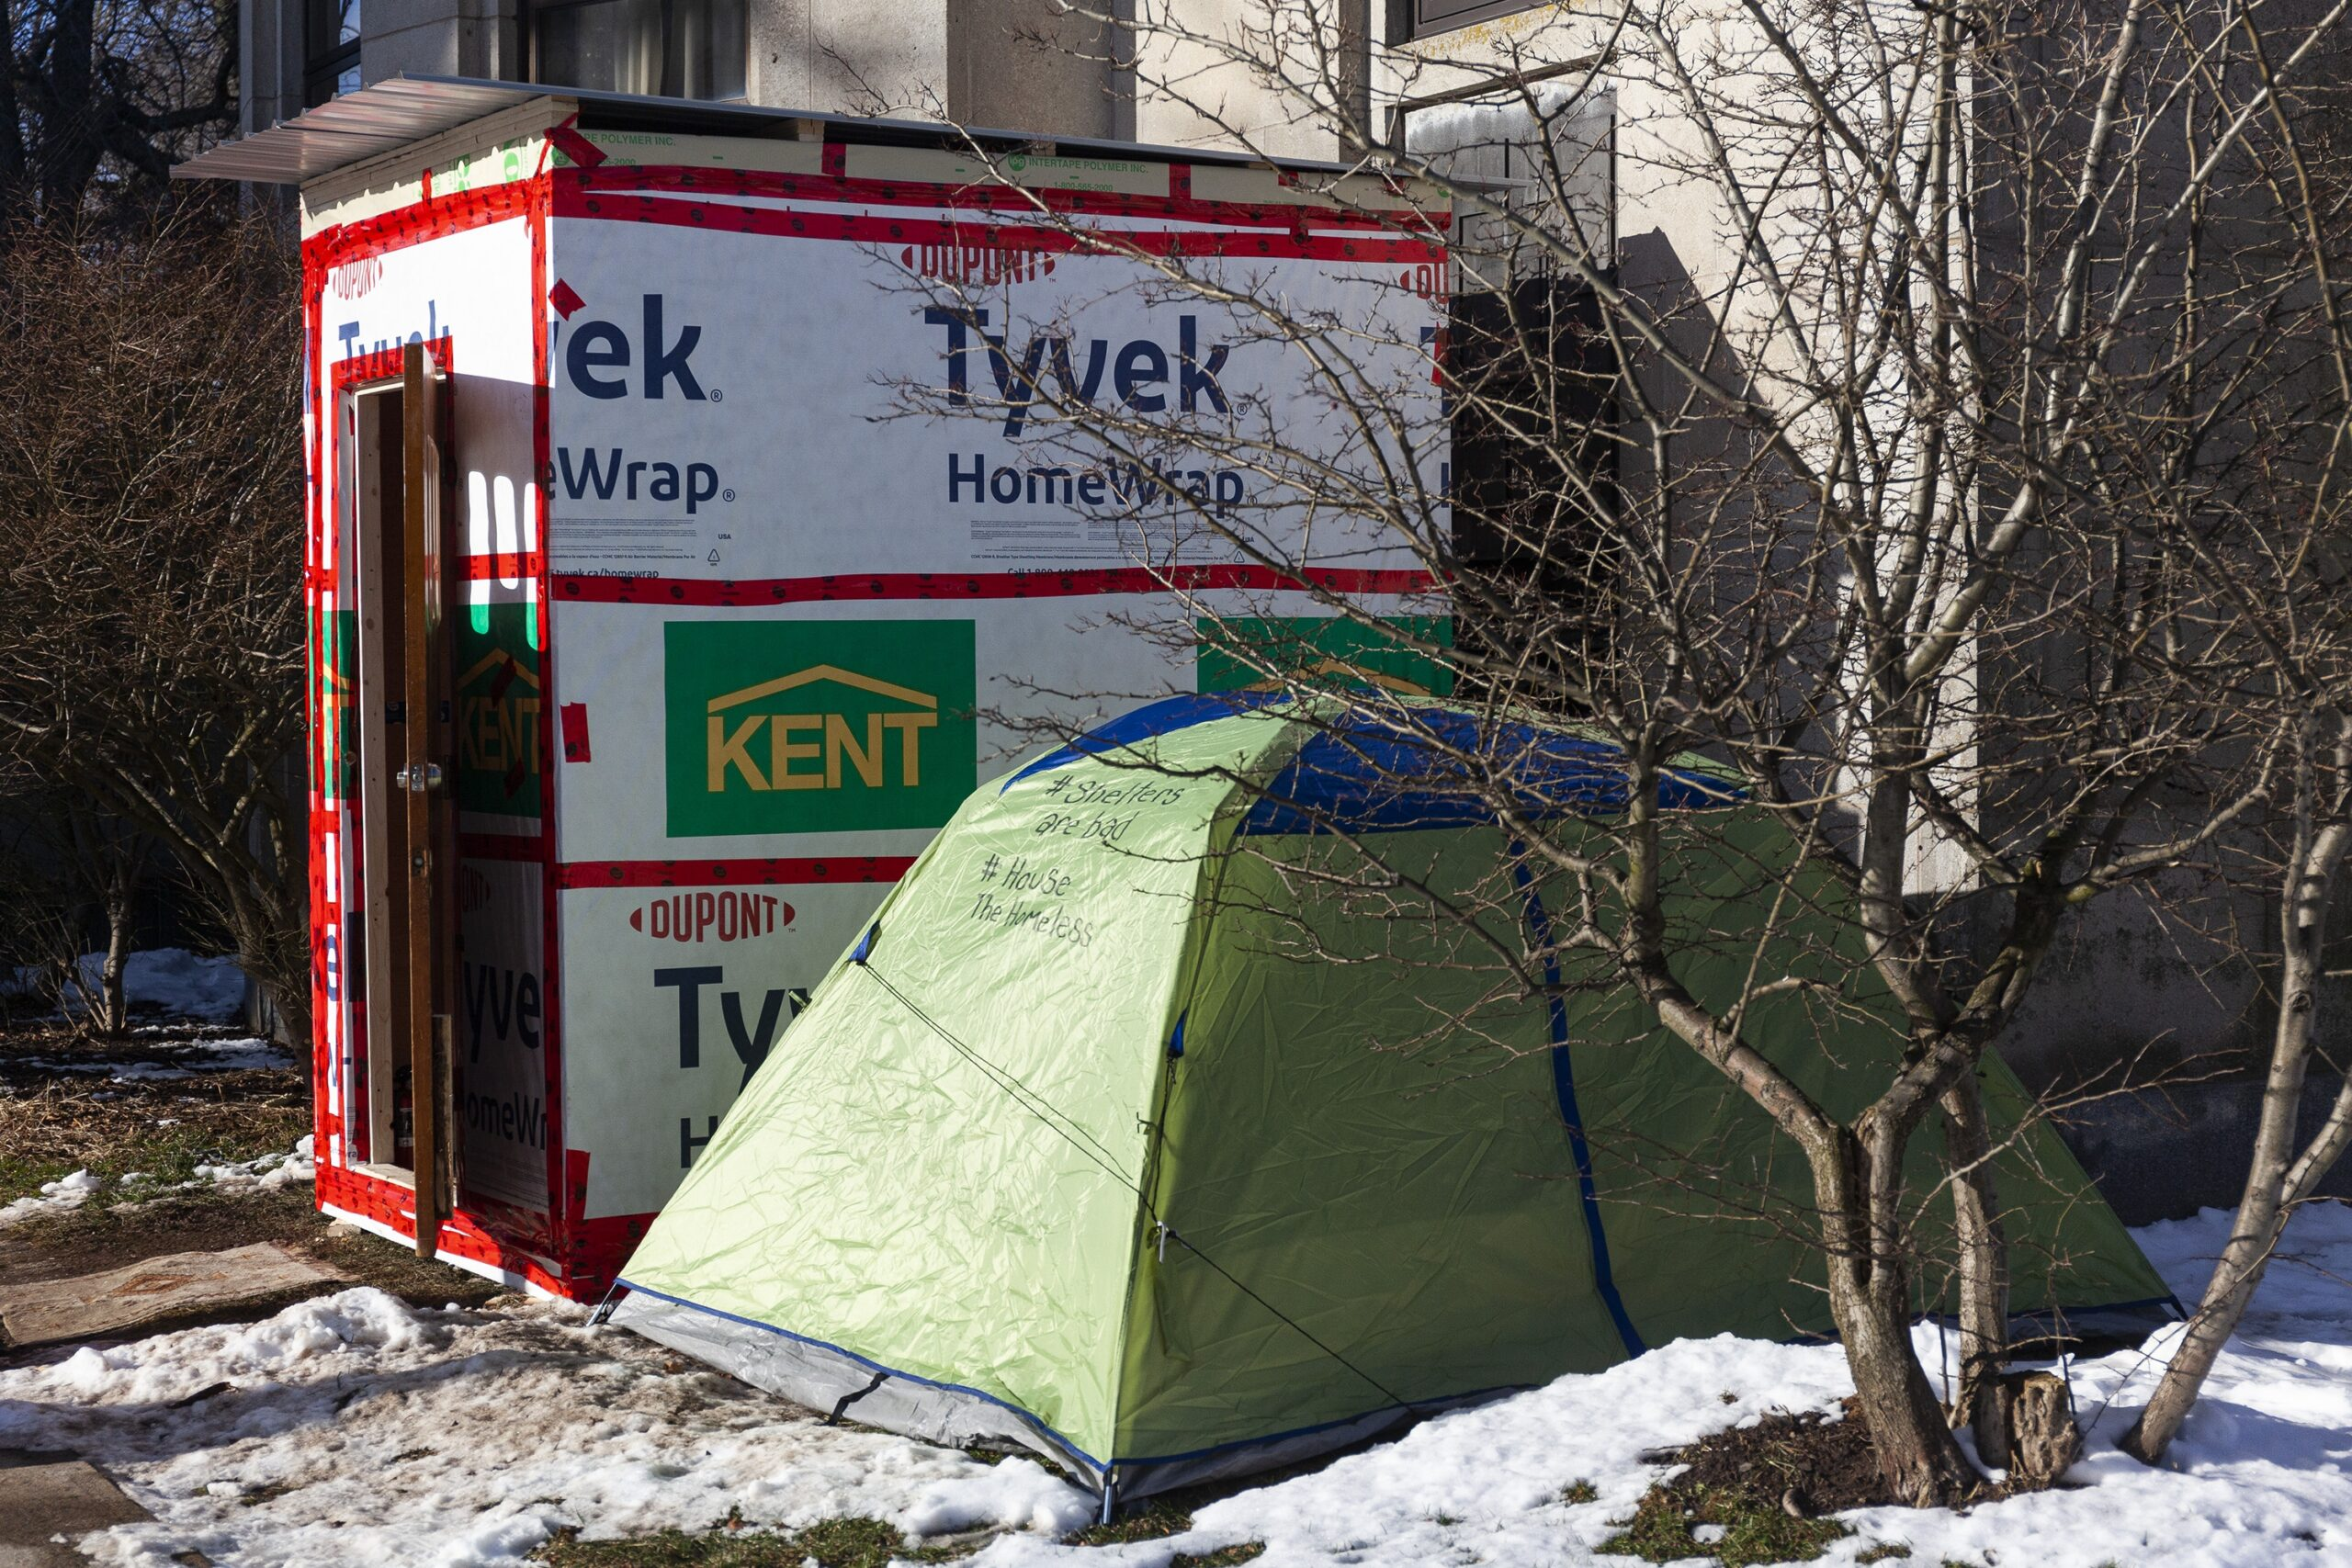 A green tent sits on snowy ground next to a temporary shelter wrapped in Tyvek. The shelter is about the size of a double bed, and 8 feet high, with a door..